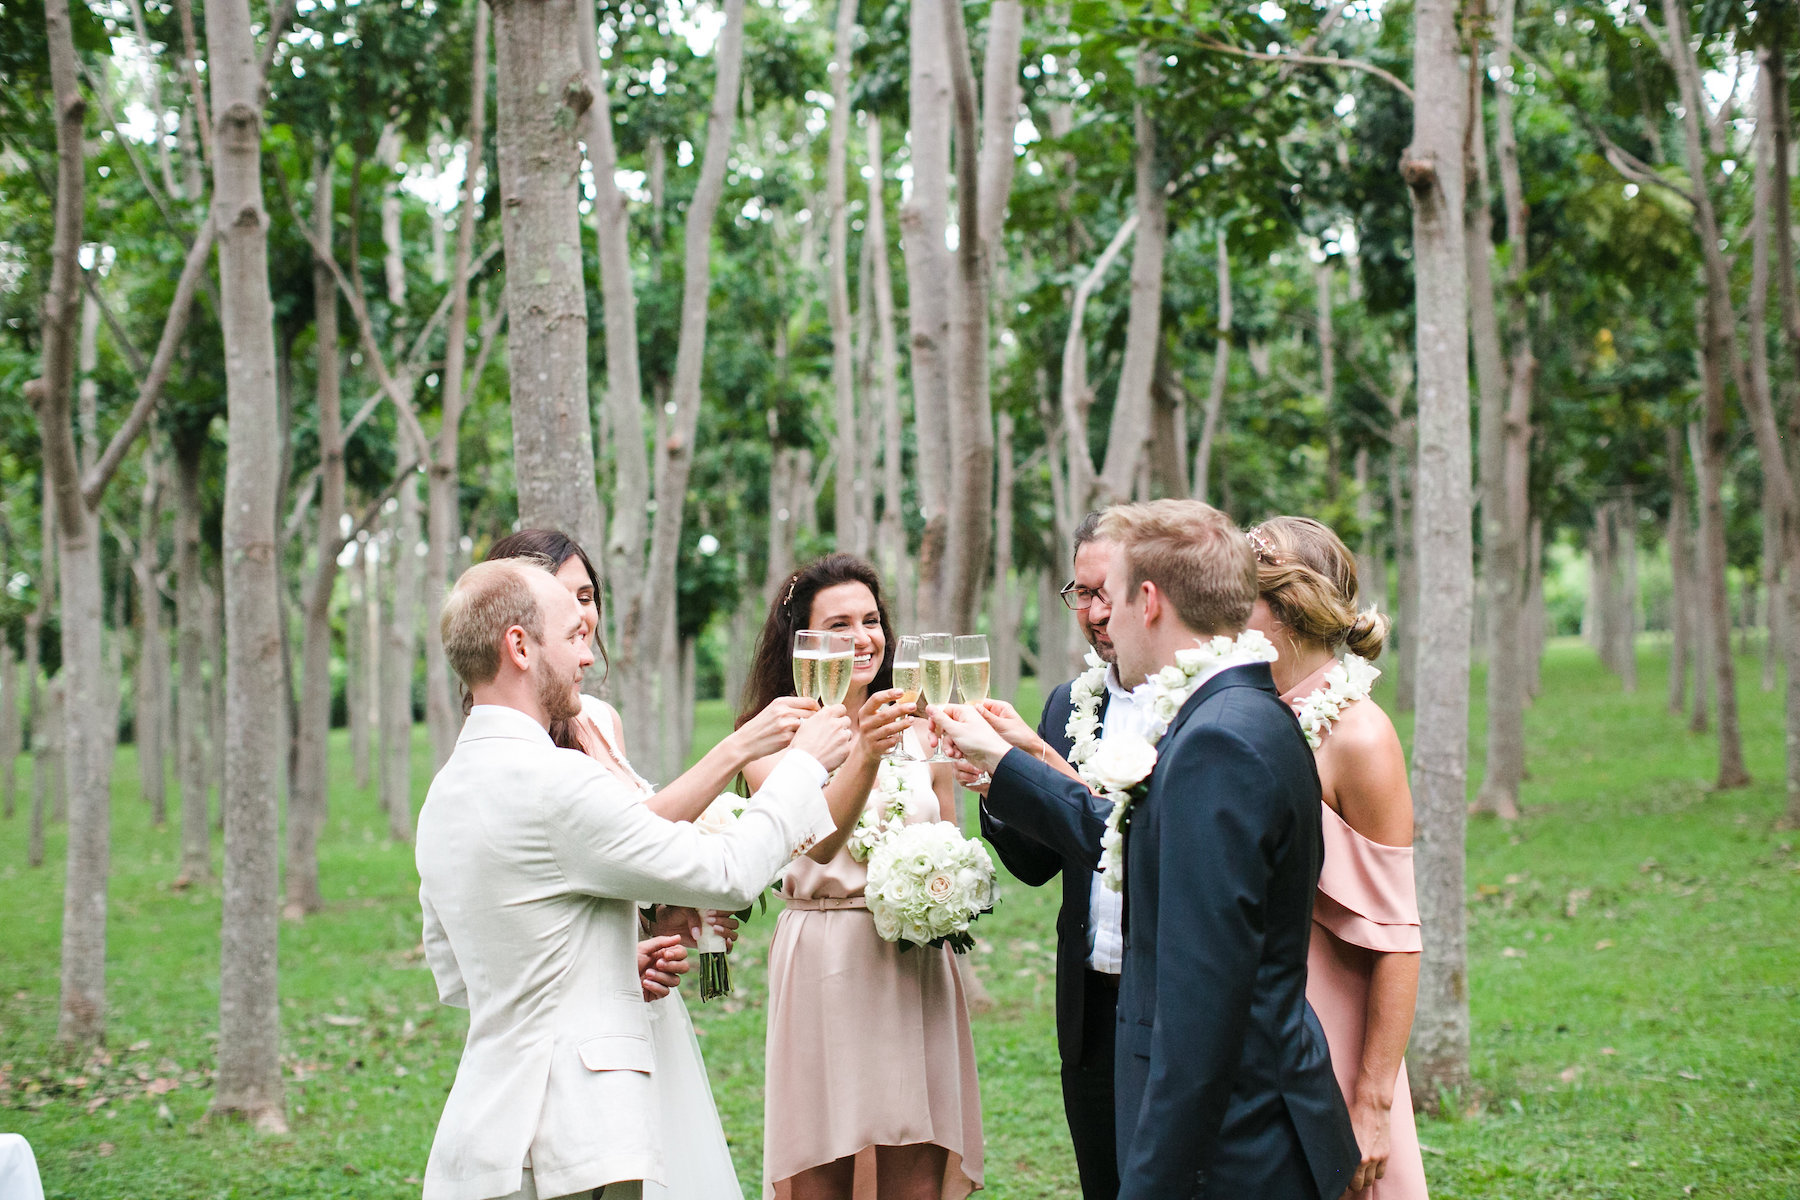 Elope in an Intimate Setting, Among Your Closest Friends and Family